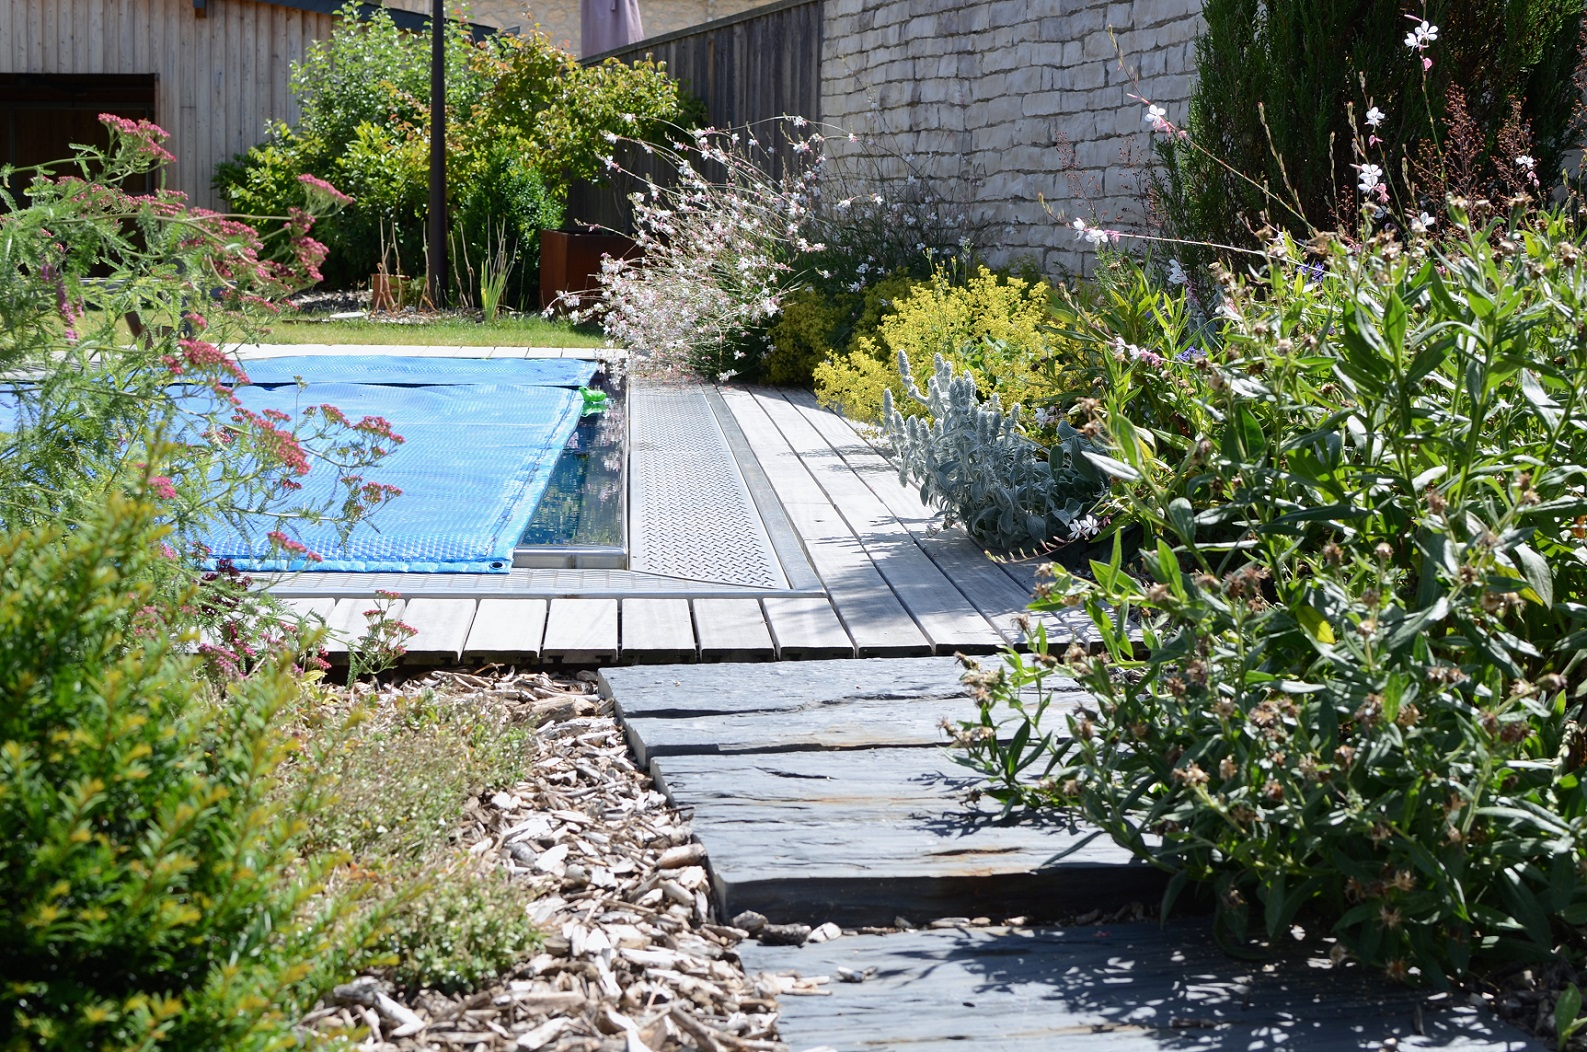 Am nagement de piscine fl jardin paysagiste cr ateur - Amenagement autour piscine photos ...